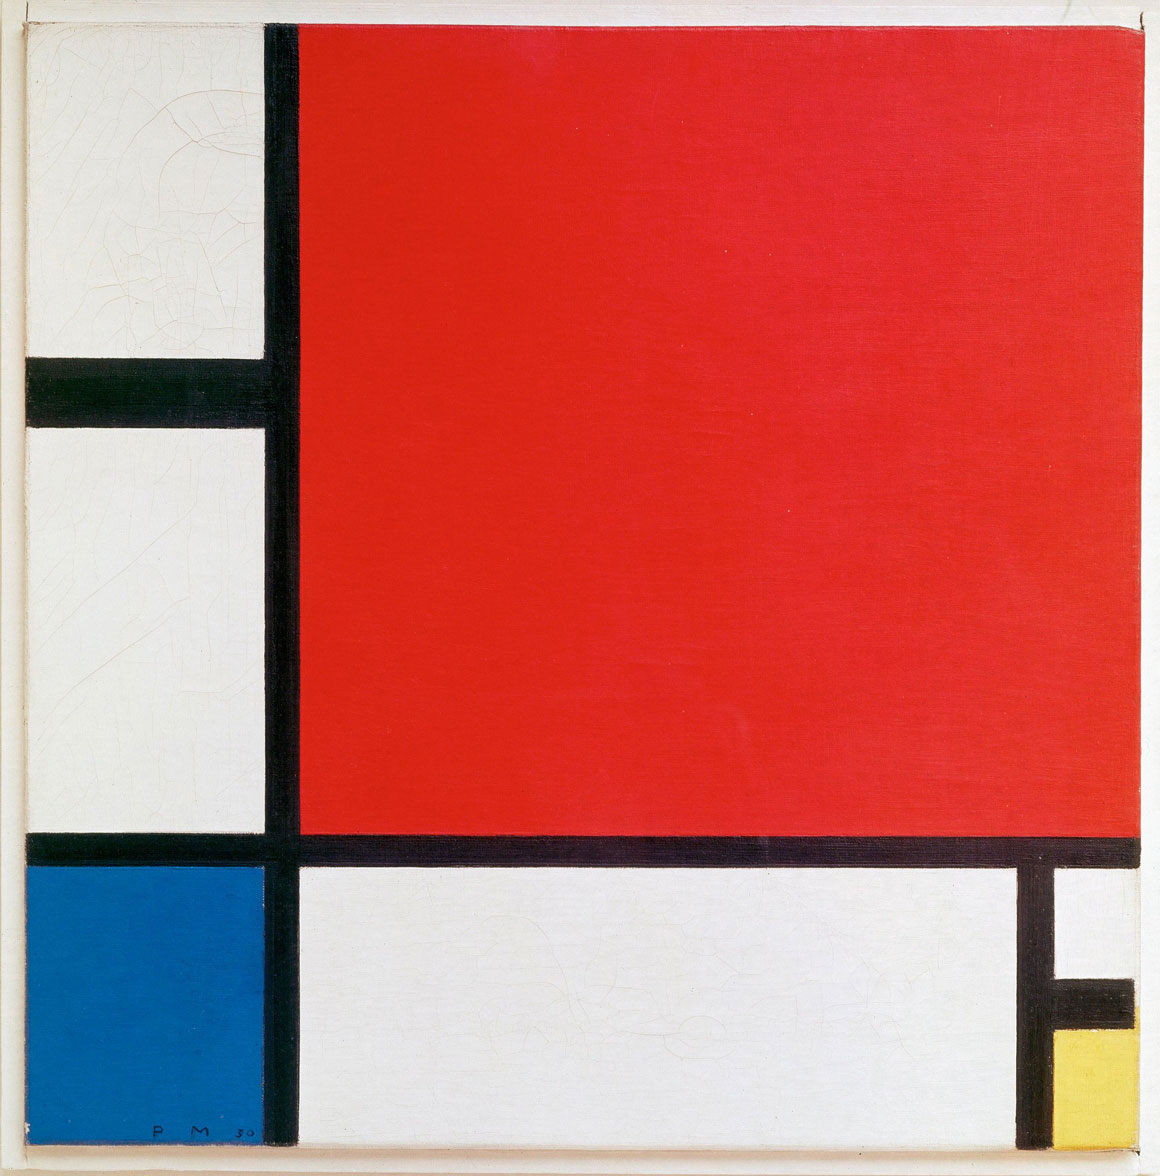 Composition II in Red, Blue, and Yellow by Piet Mondrian, 1929